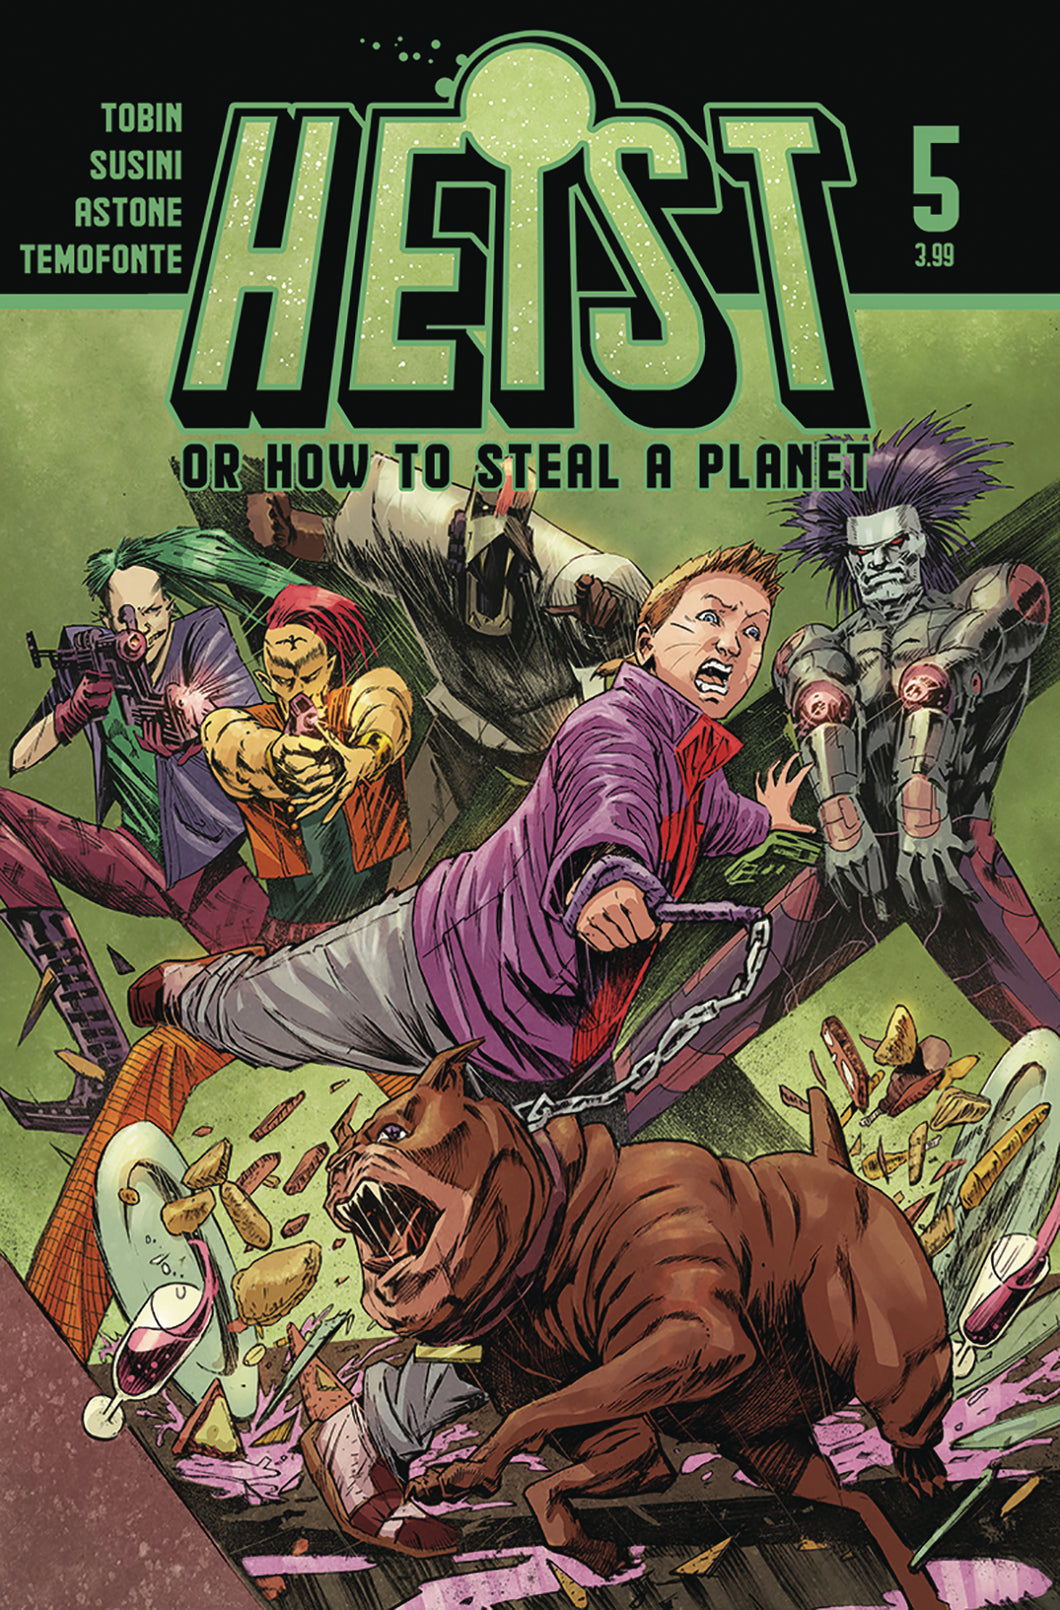 Heist How To Steal A Planet #5